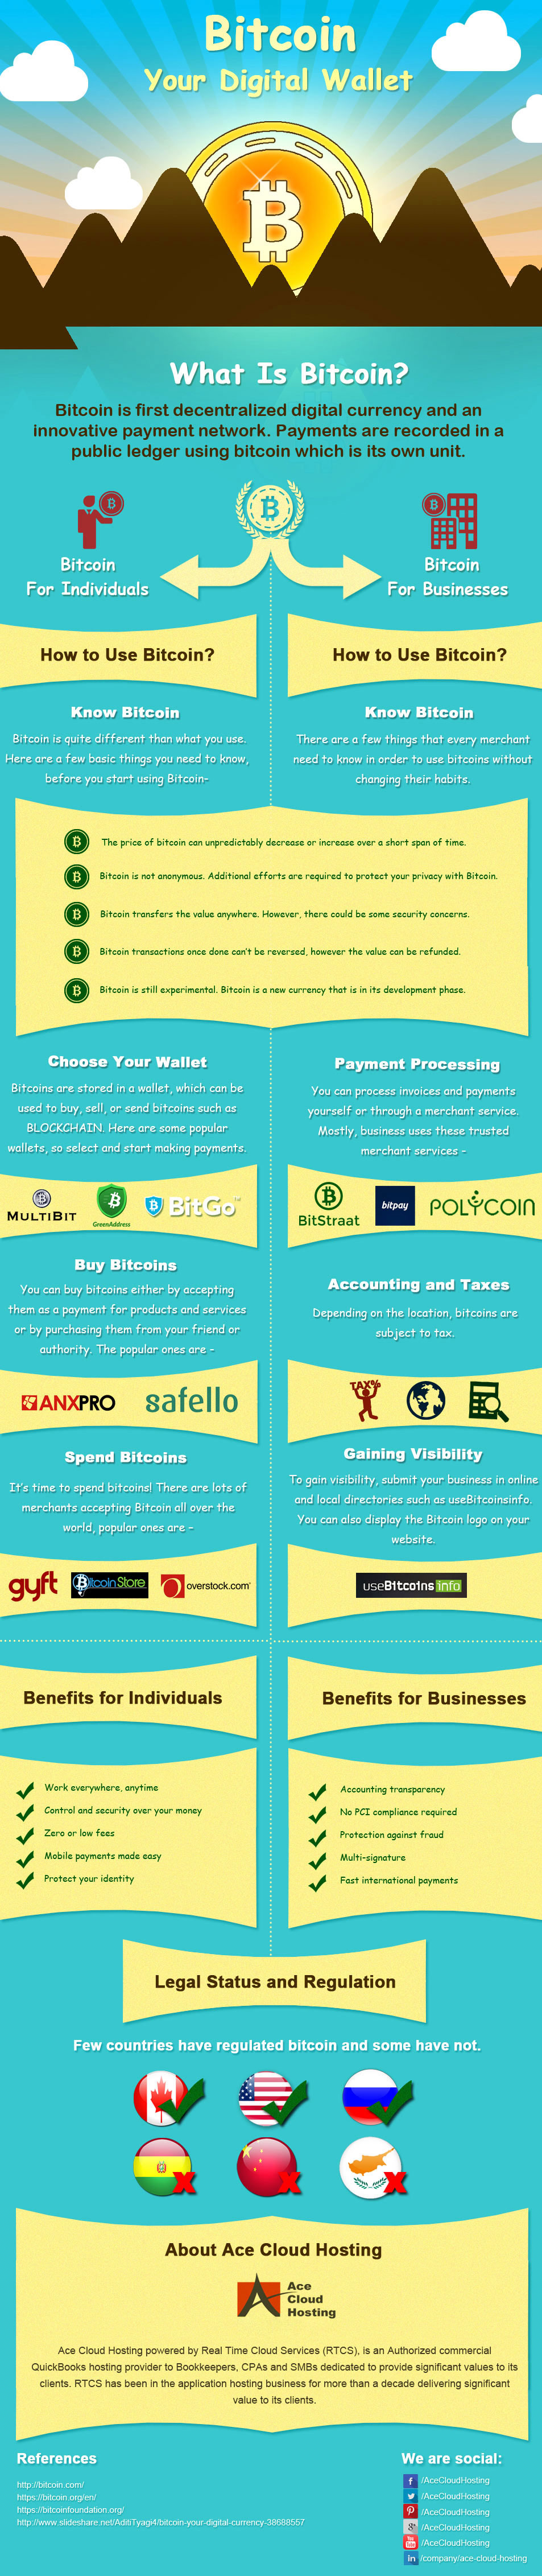 Bitcoin-Your-Digital-Wallet